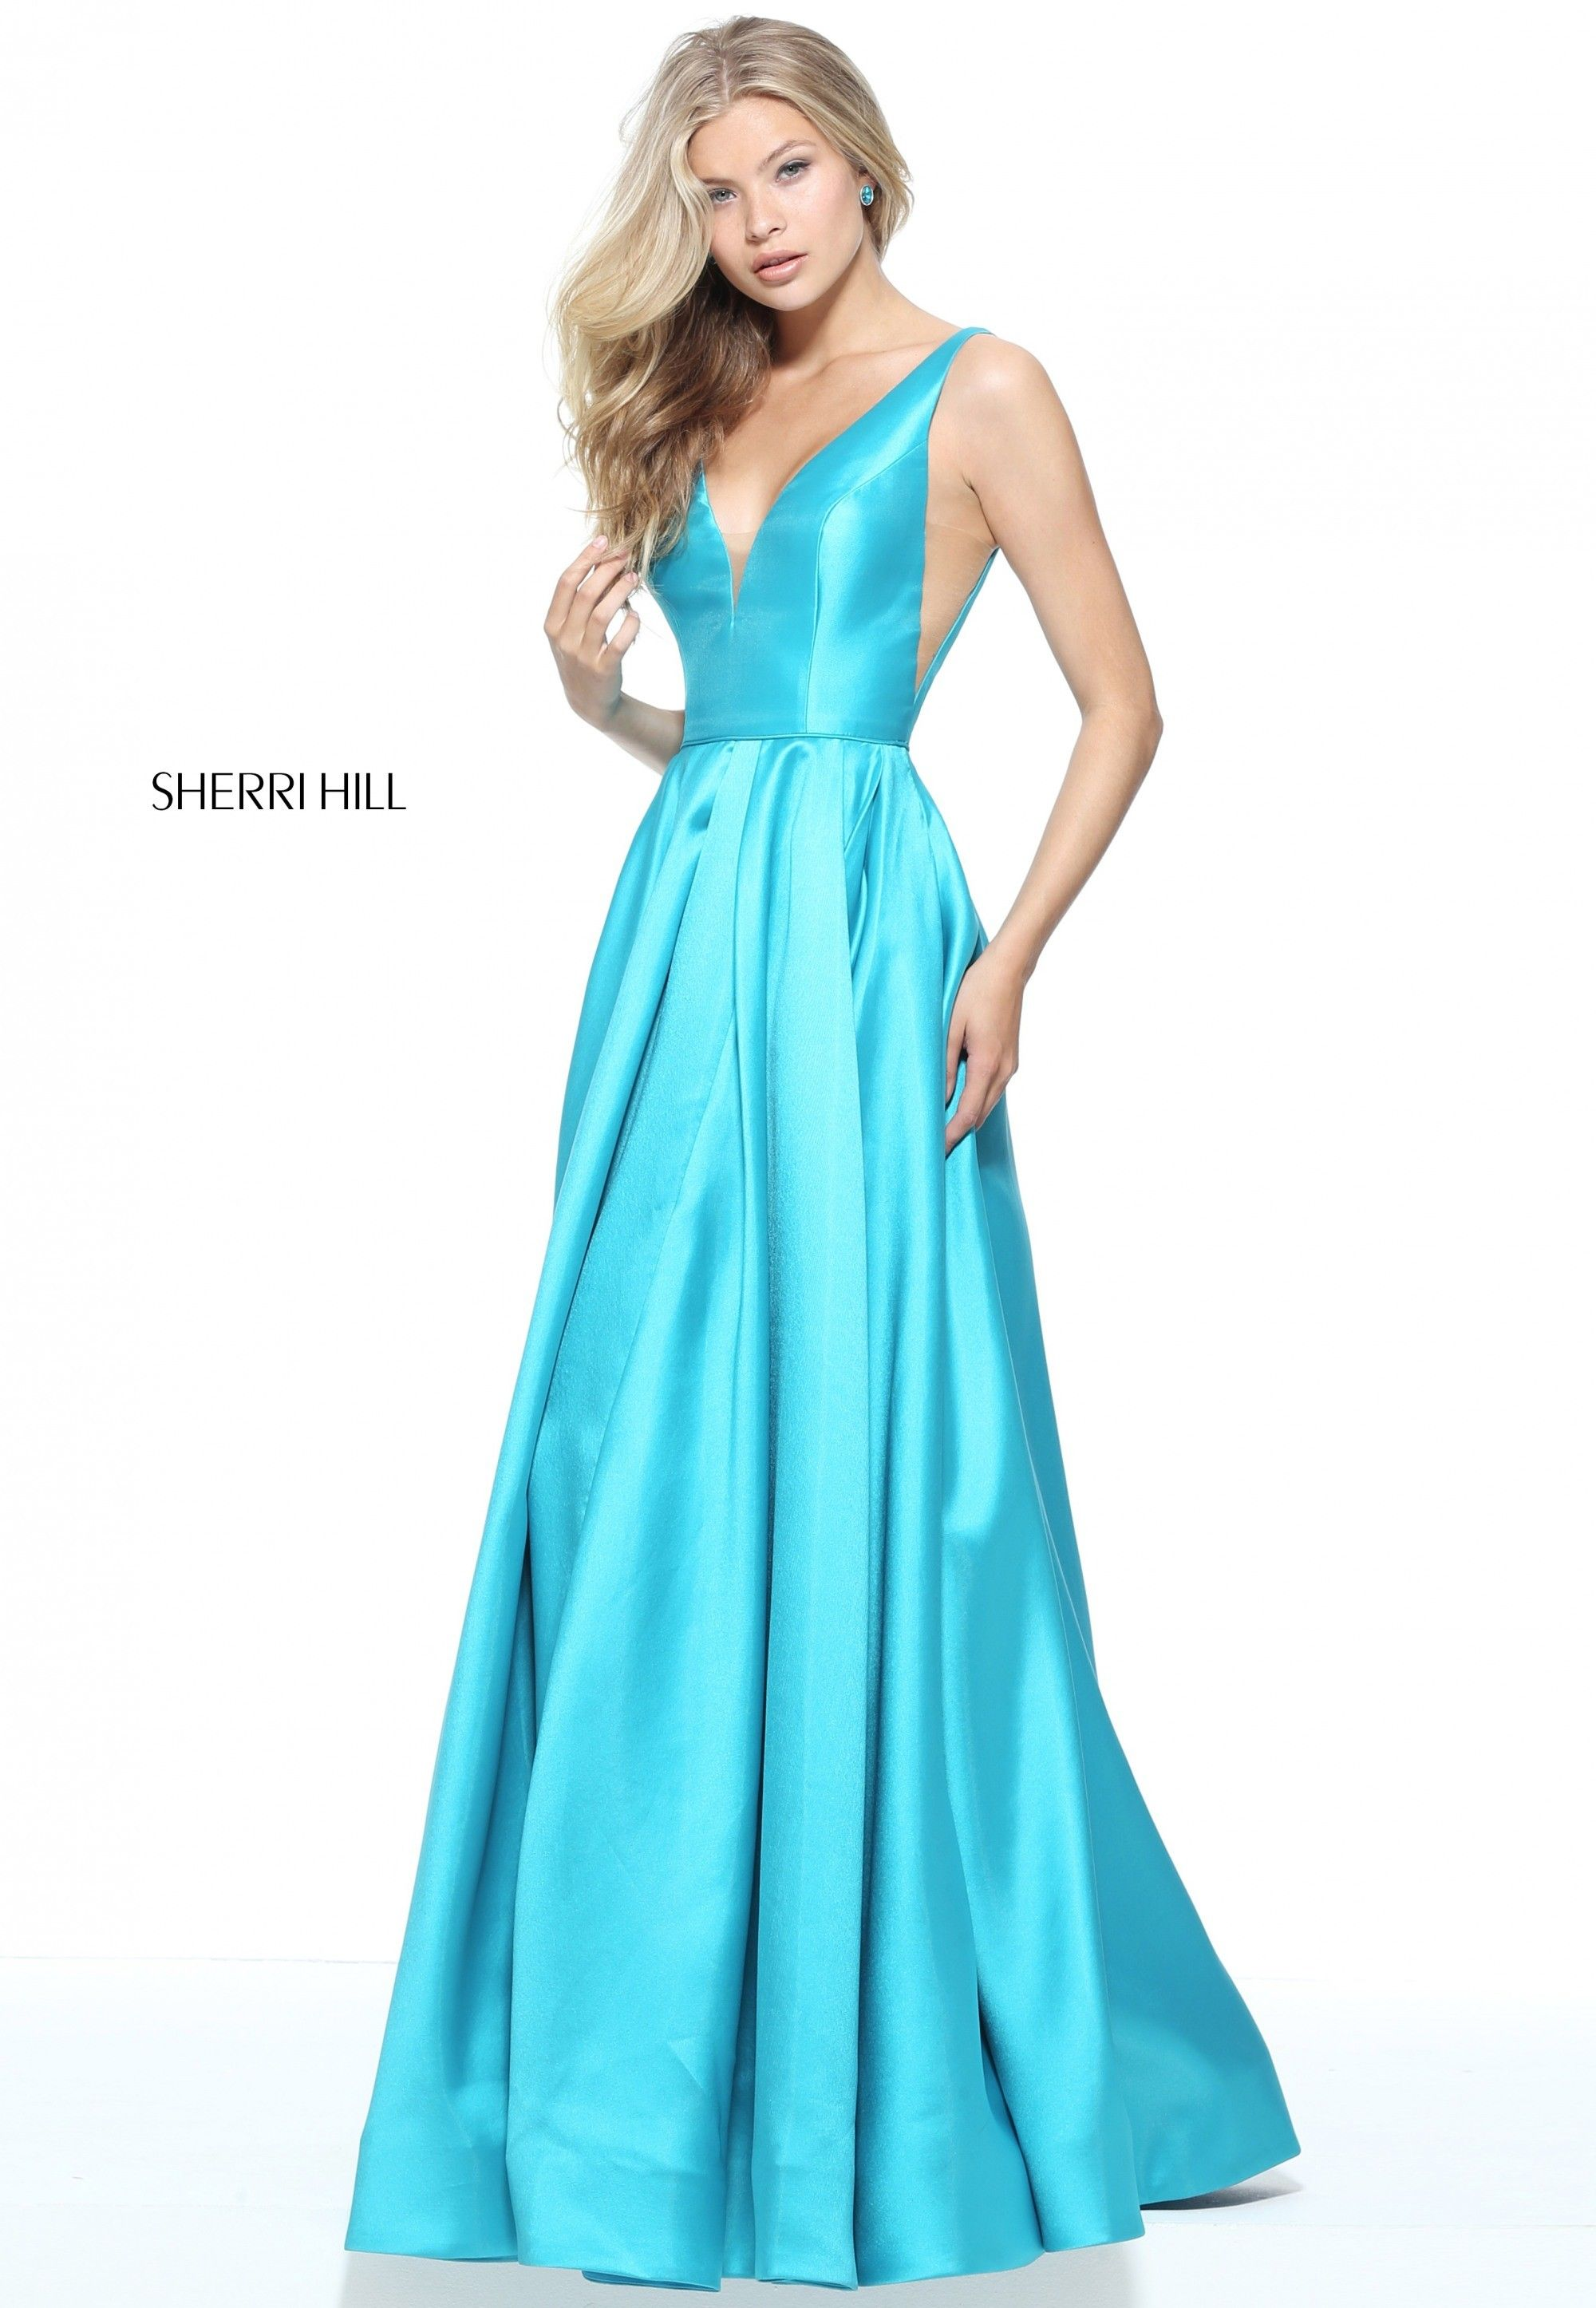 Sherri hill prom dress e pinterest